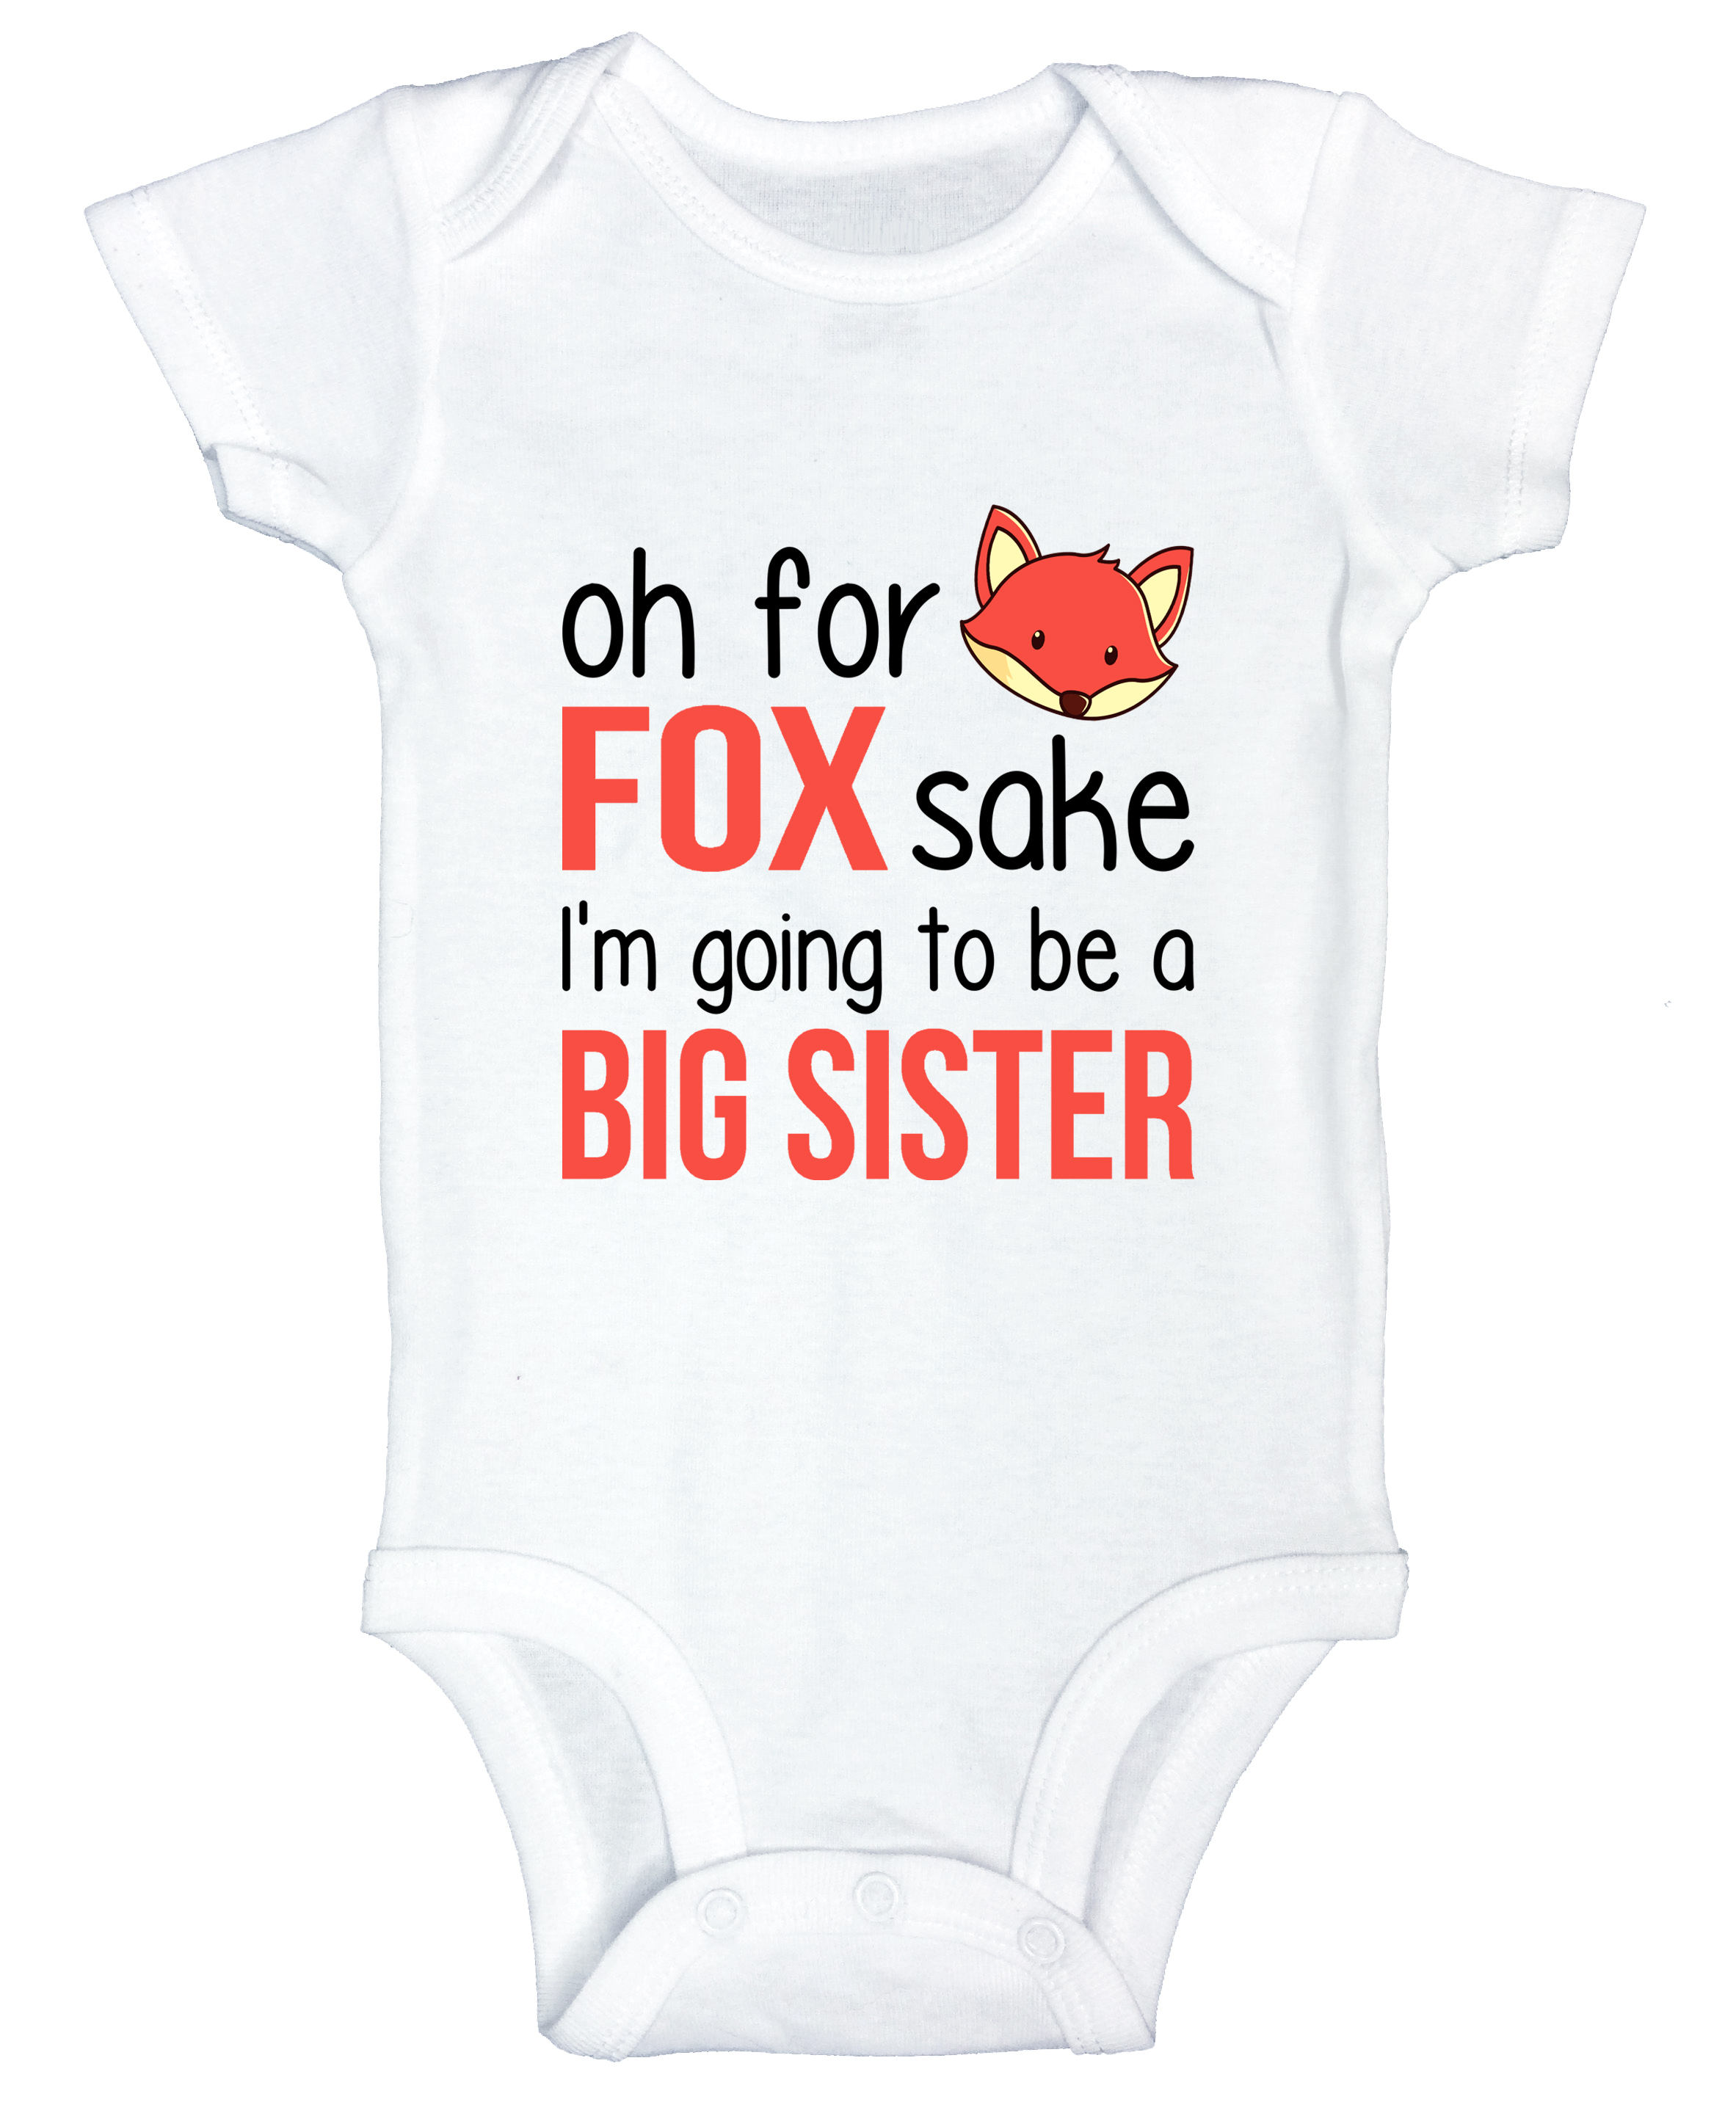 Big Sister Baby Long Sleeve Raglan Onesie//Im Going to BE A Big Sister//Girls